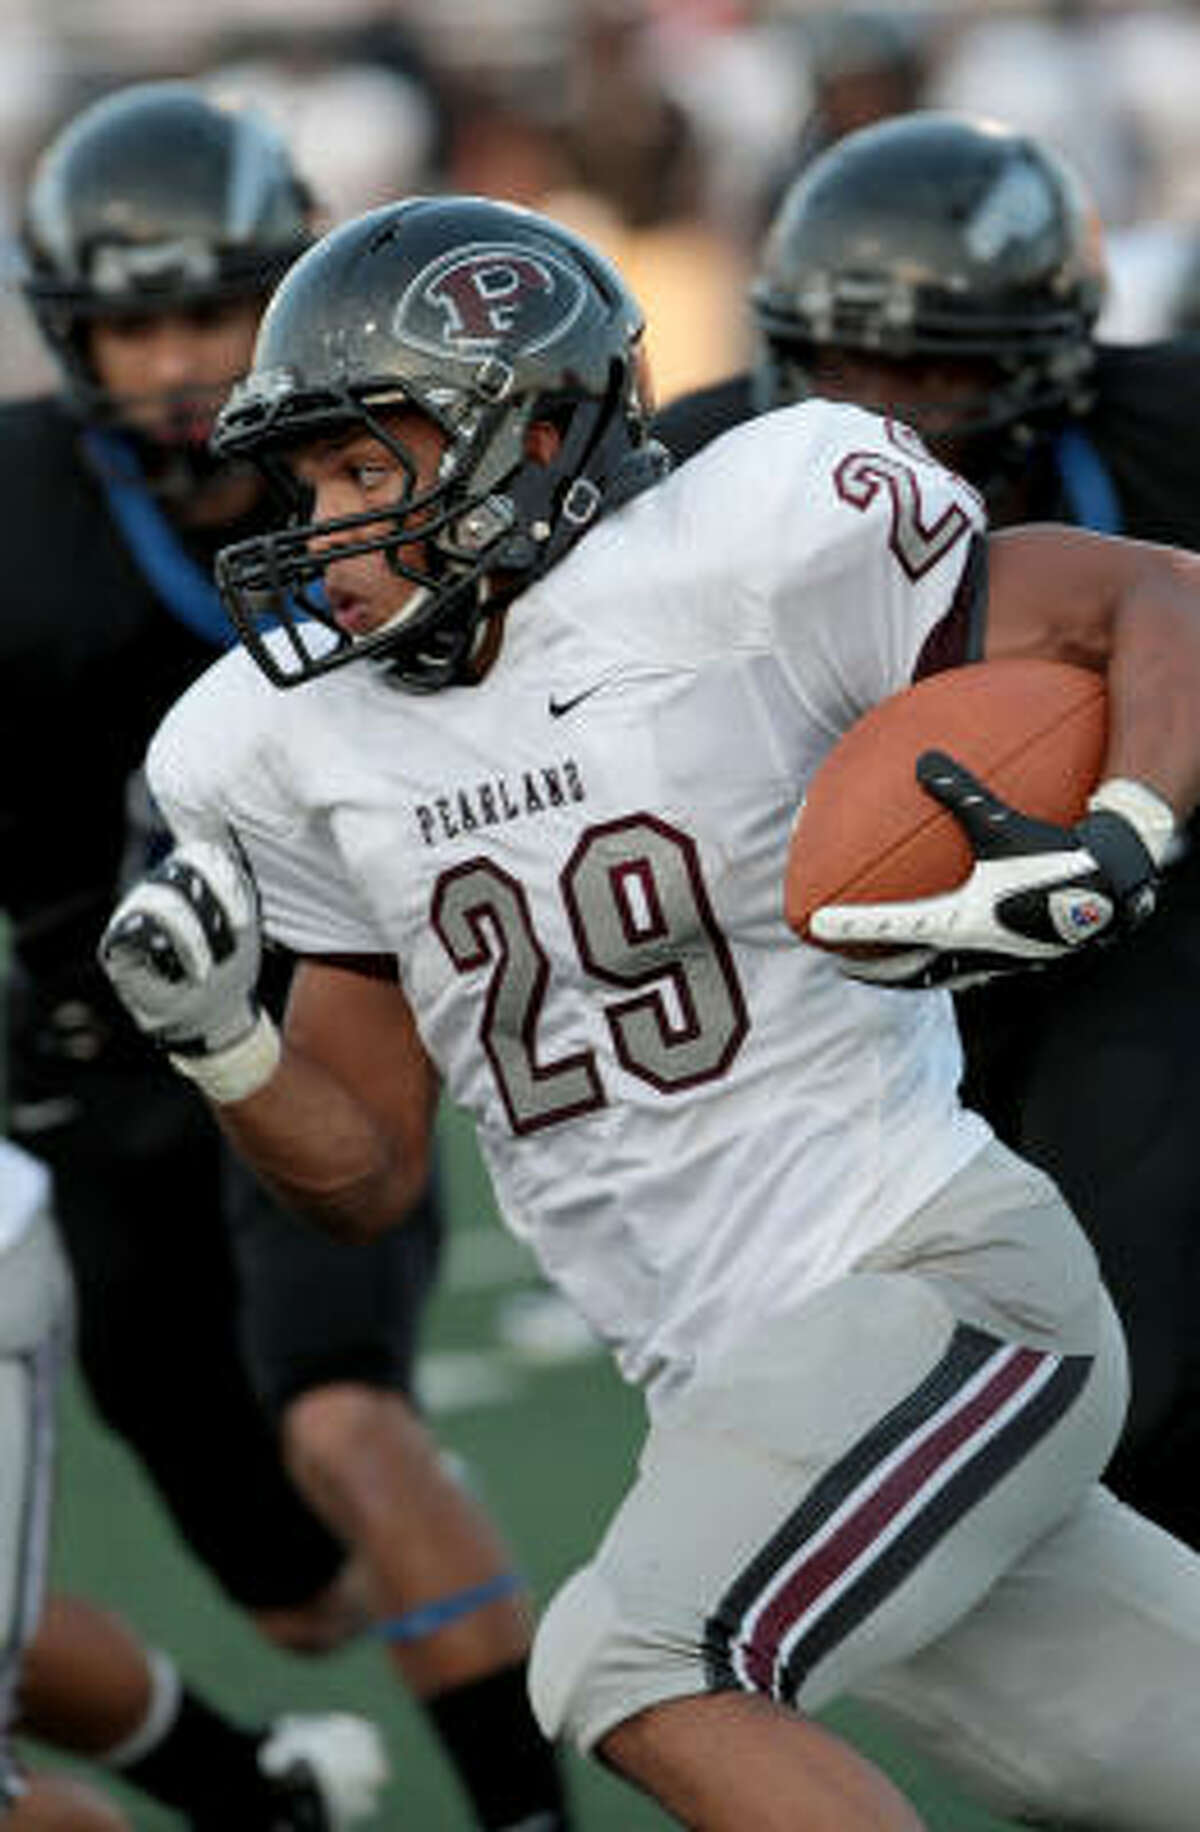 Pearland running back Dustin Garrison tries to find the corner on this carry.